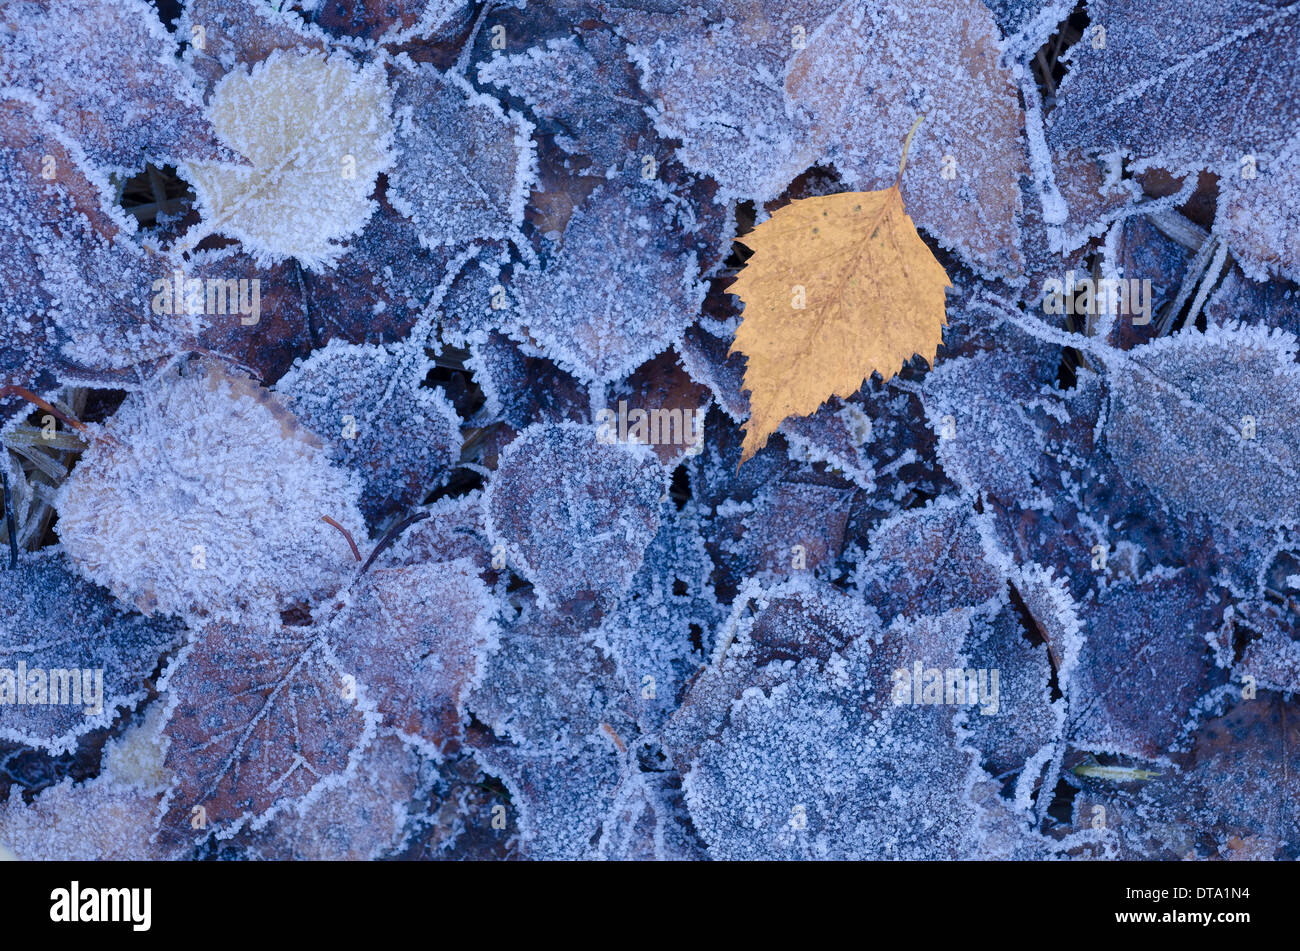 Hoarfrost on birch leaves, Brandenburg, Germany - Stock Image